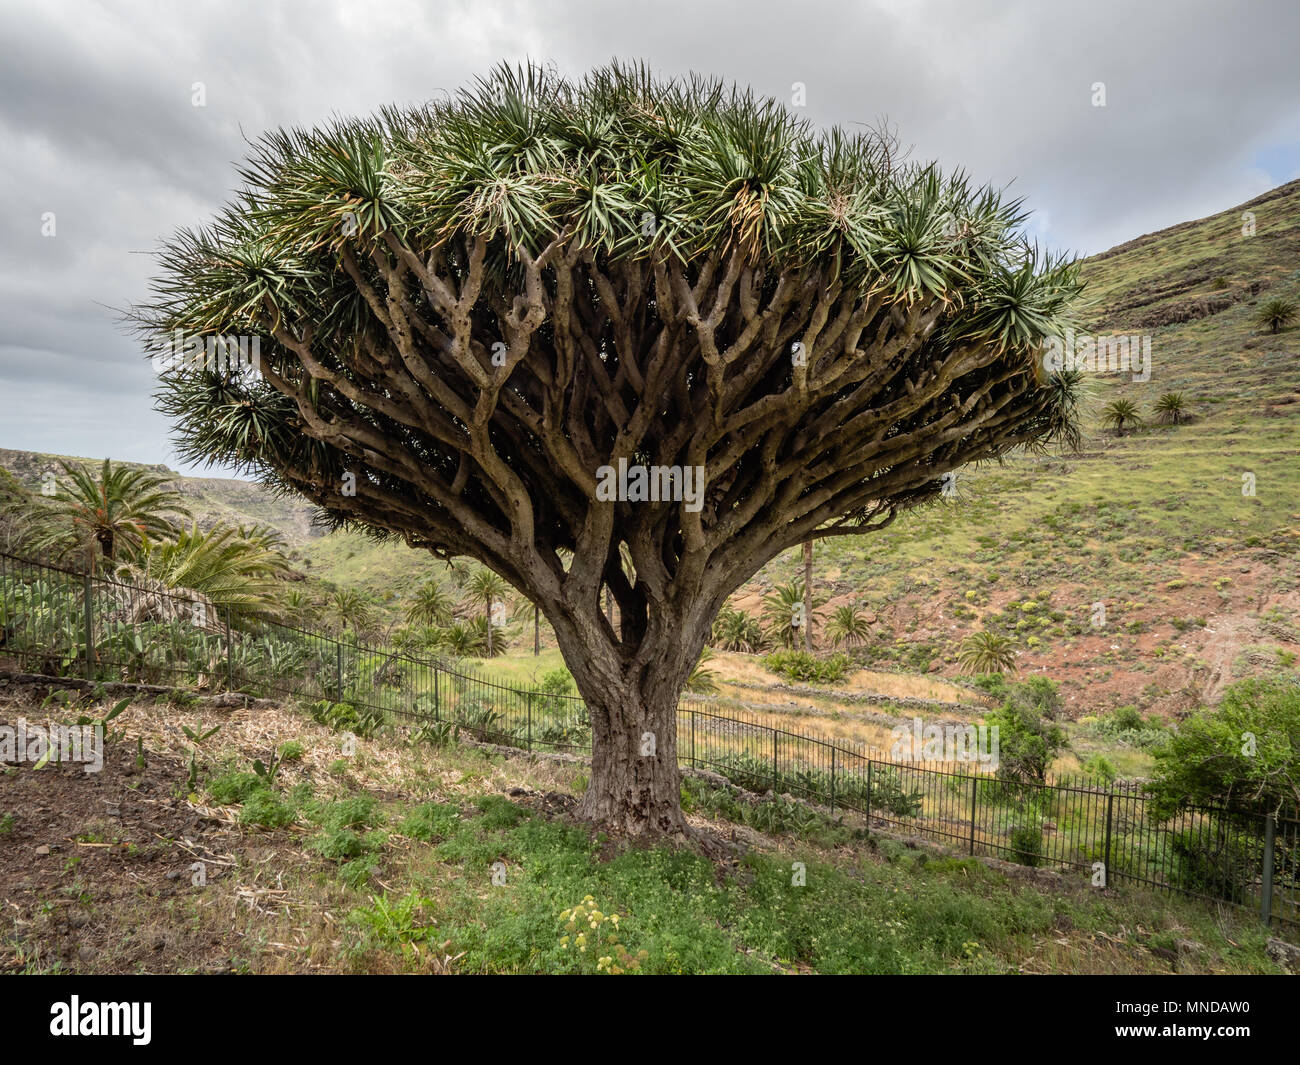 Ancient and revered Dragon Tree Dracena drago at Agalan on La Gomera in the Canary Islands - Stock Image